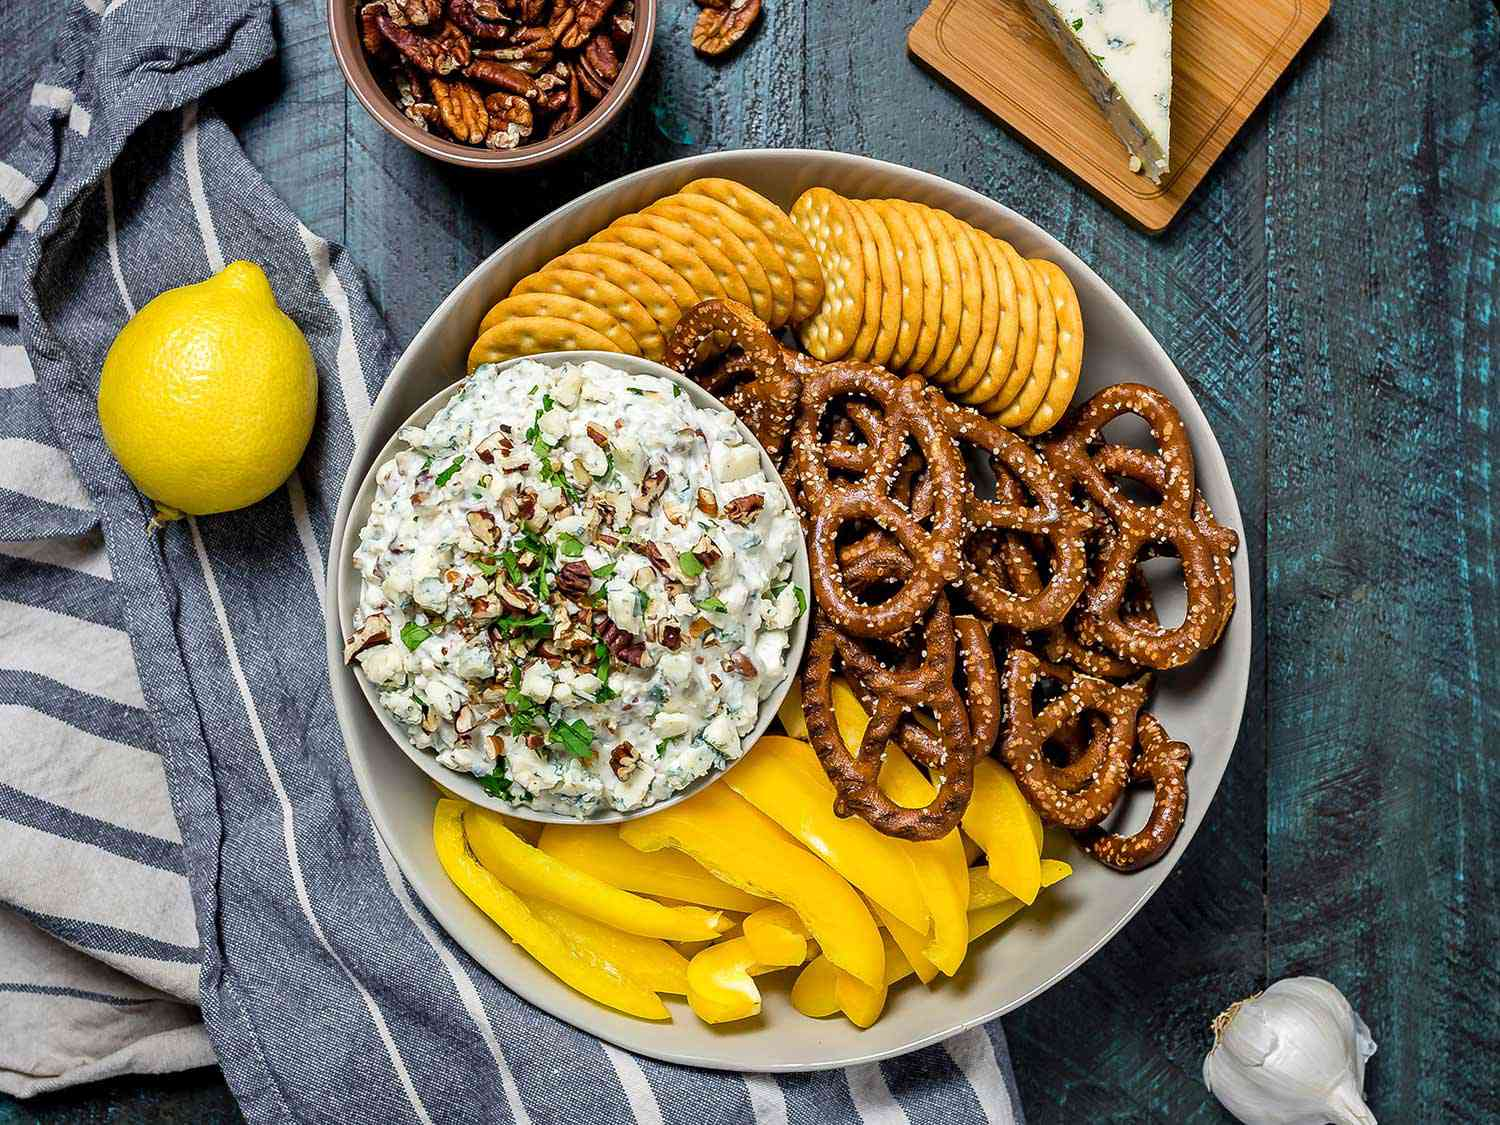 20181112-blue-cheese-and-toasted-pecan-dip-overhead-morgan-eisenberg